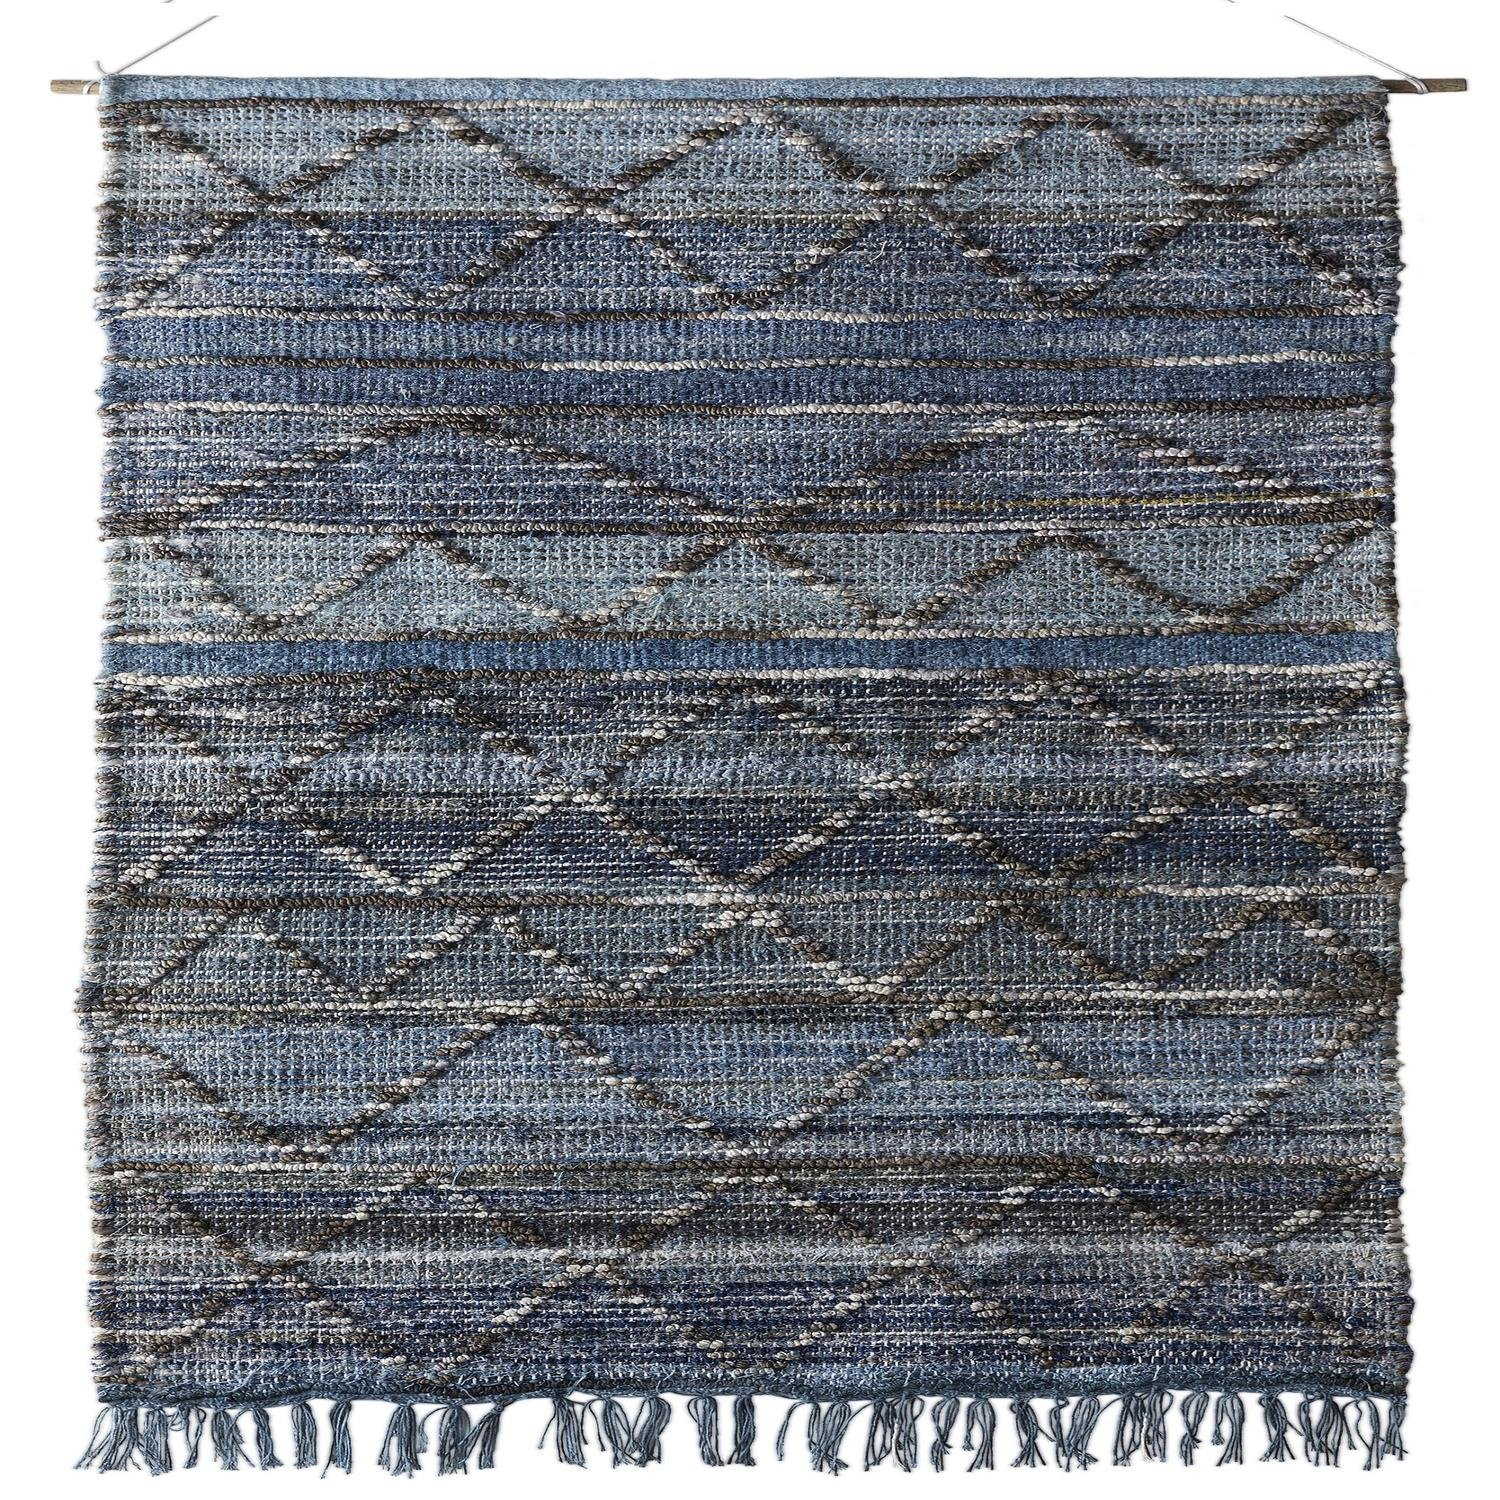 2.5' x 5' Soft Slate and Pale Baby Gray Blue and Artic White Hand Woven Hanging Wall Decor